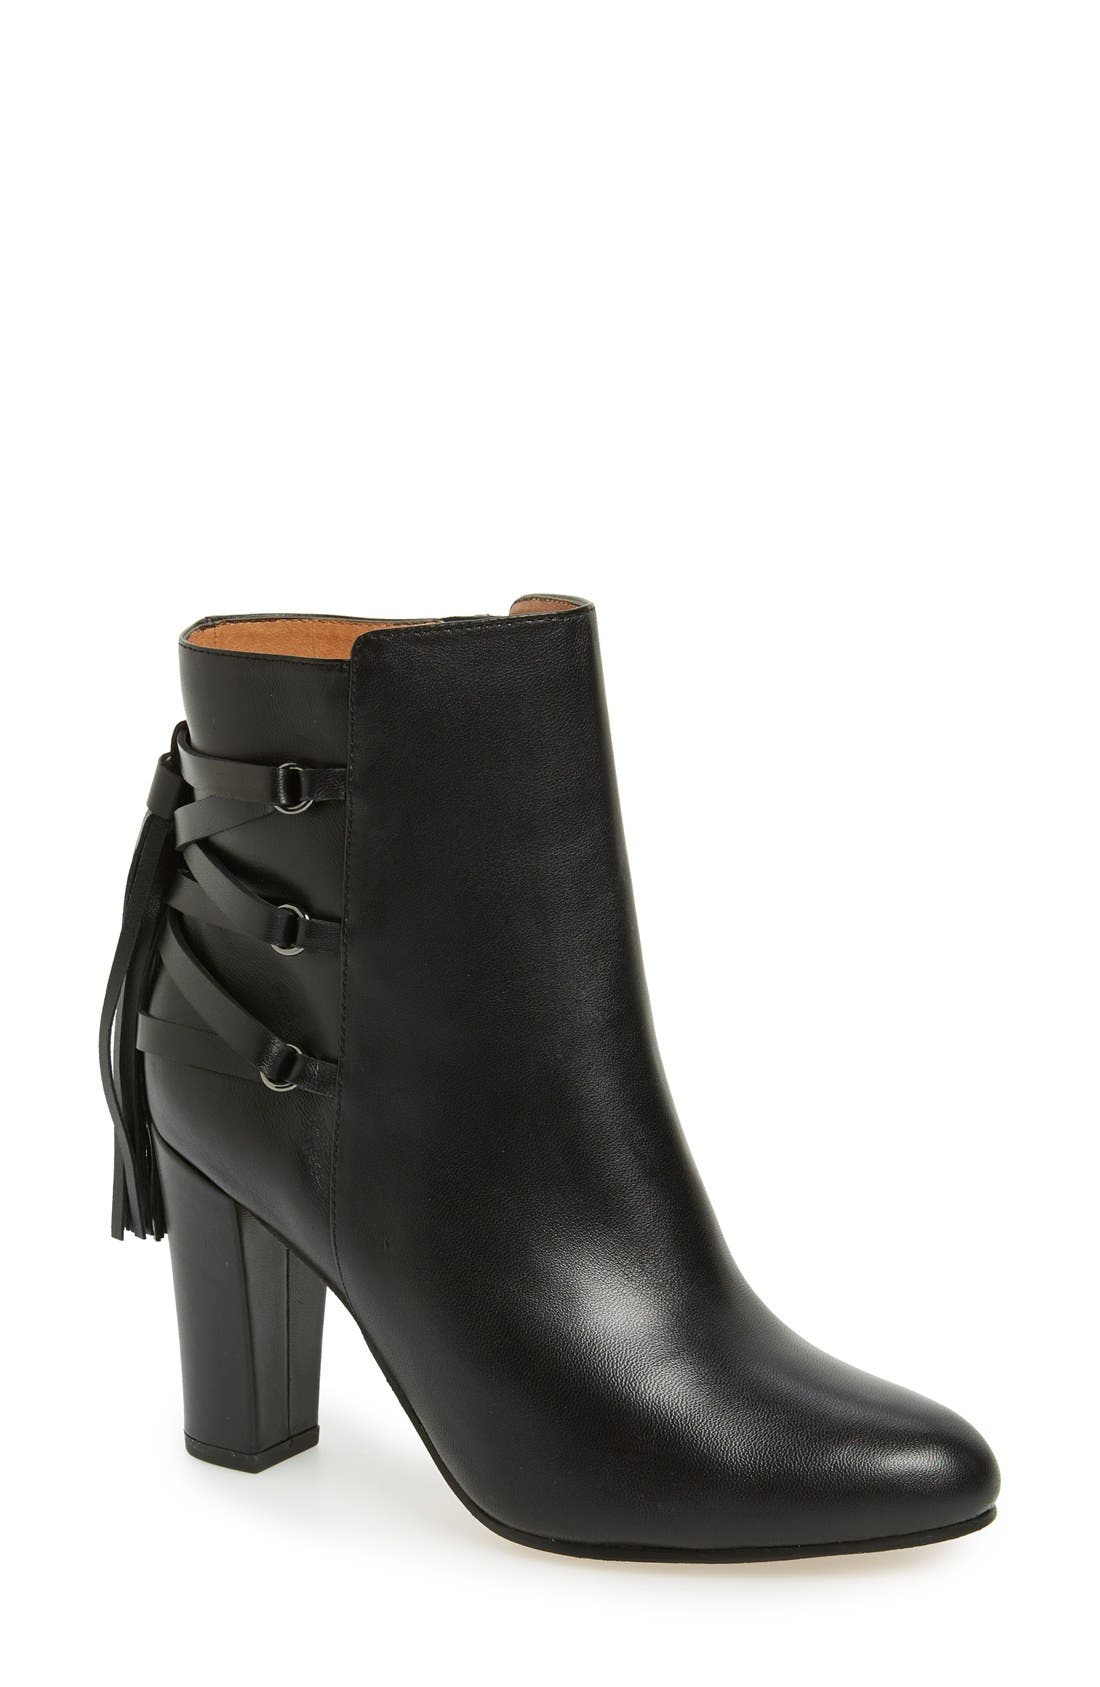 Main Image - Halogen® 'Sadee' Lace-Up Almond Toe Bootie (Women)